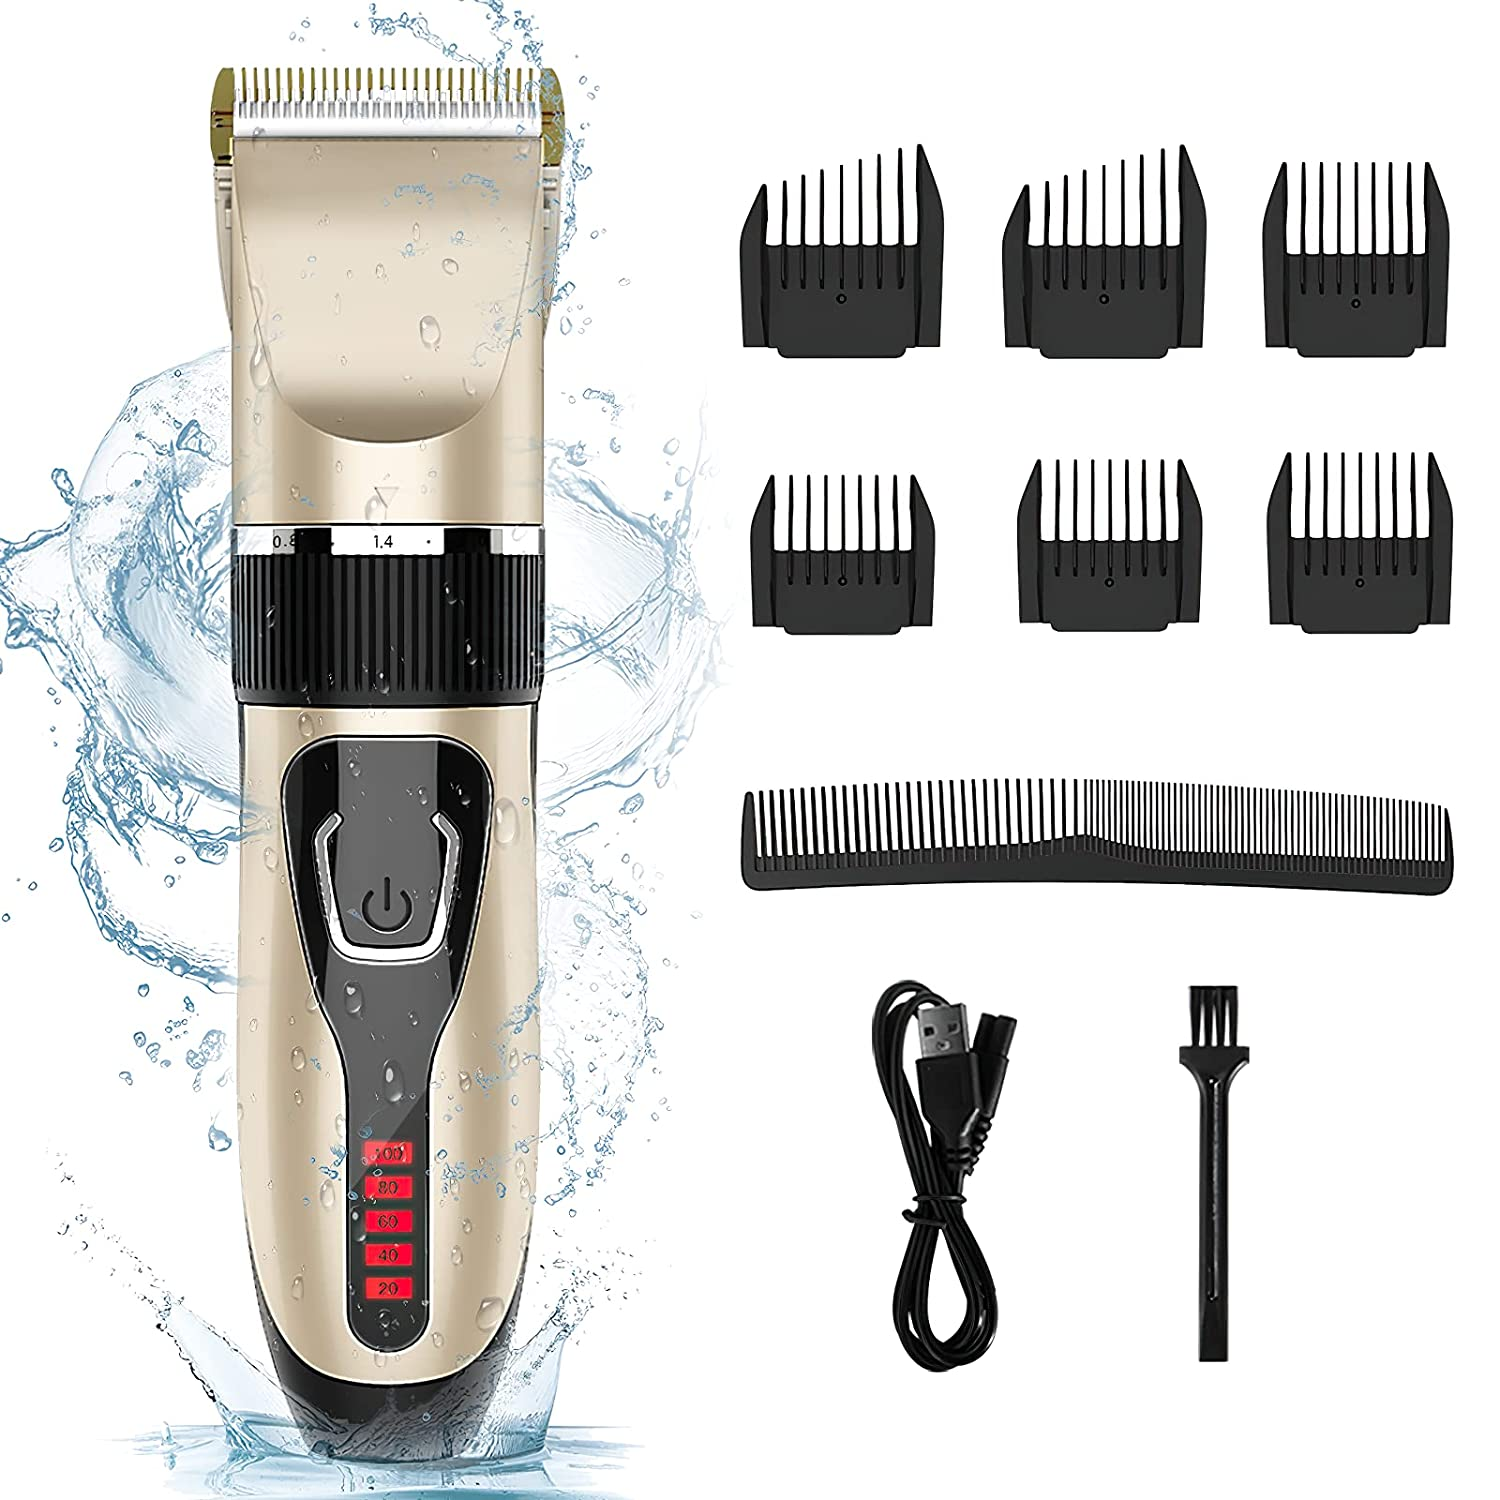 Hair Clipper Memphis Mall Max 45% OFF RUEOO ZCC100 Clippers For Cordless Pro Men -